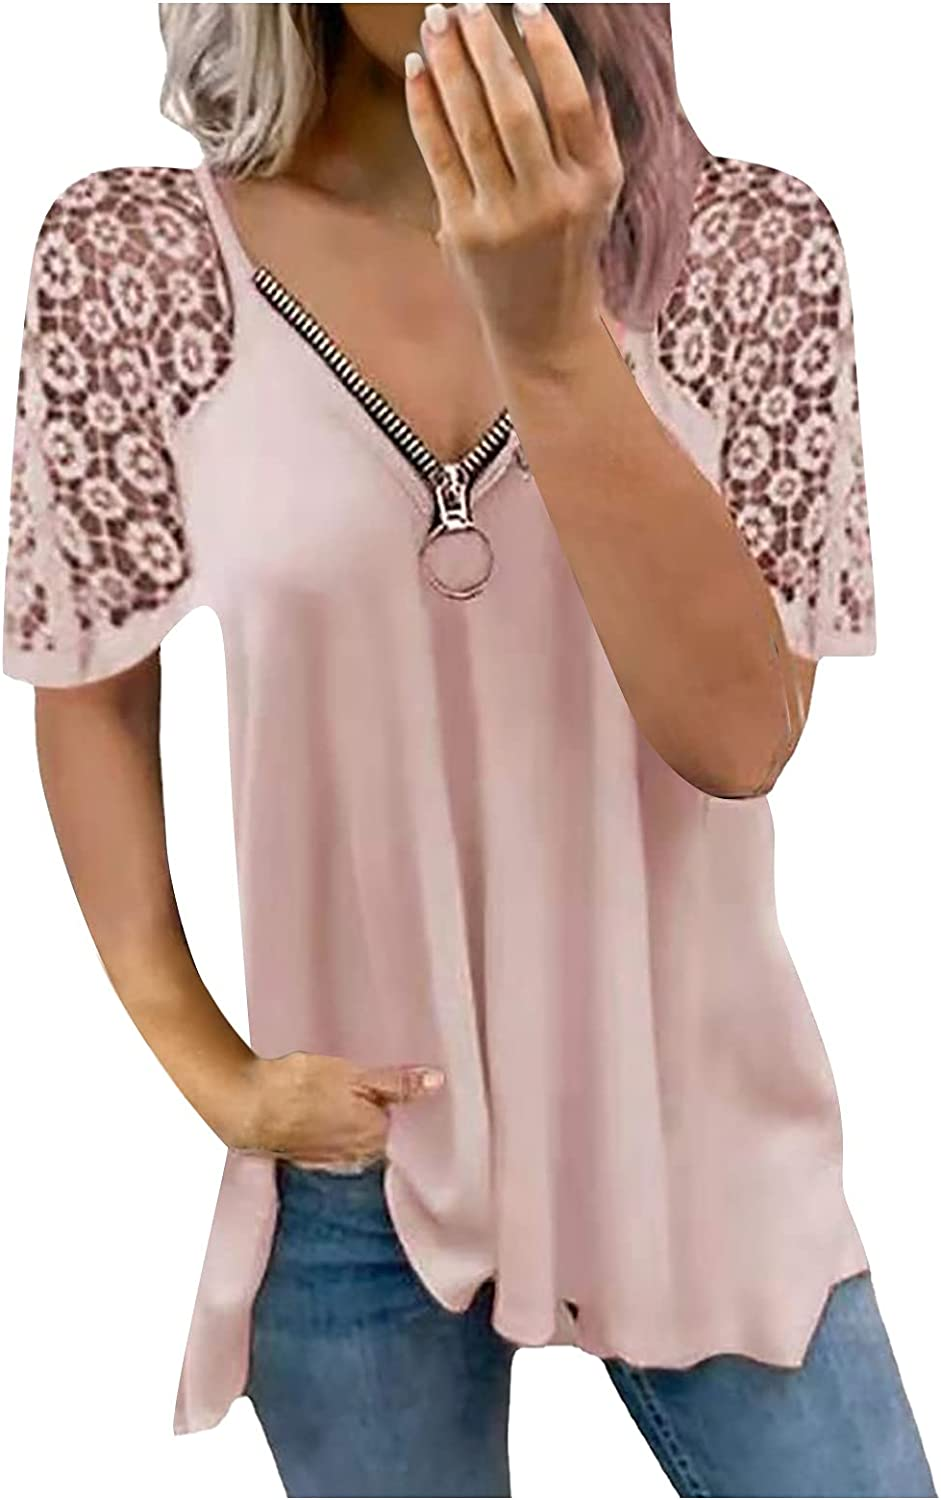 ORT Tee Shirts for Women Loose Fit, Flower Printed O-Neck Short Sleeve Casual Tunic Blouse Tops Fashion Tee Shirts